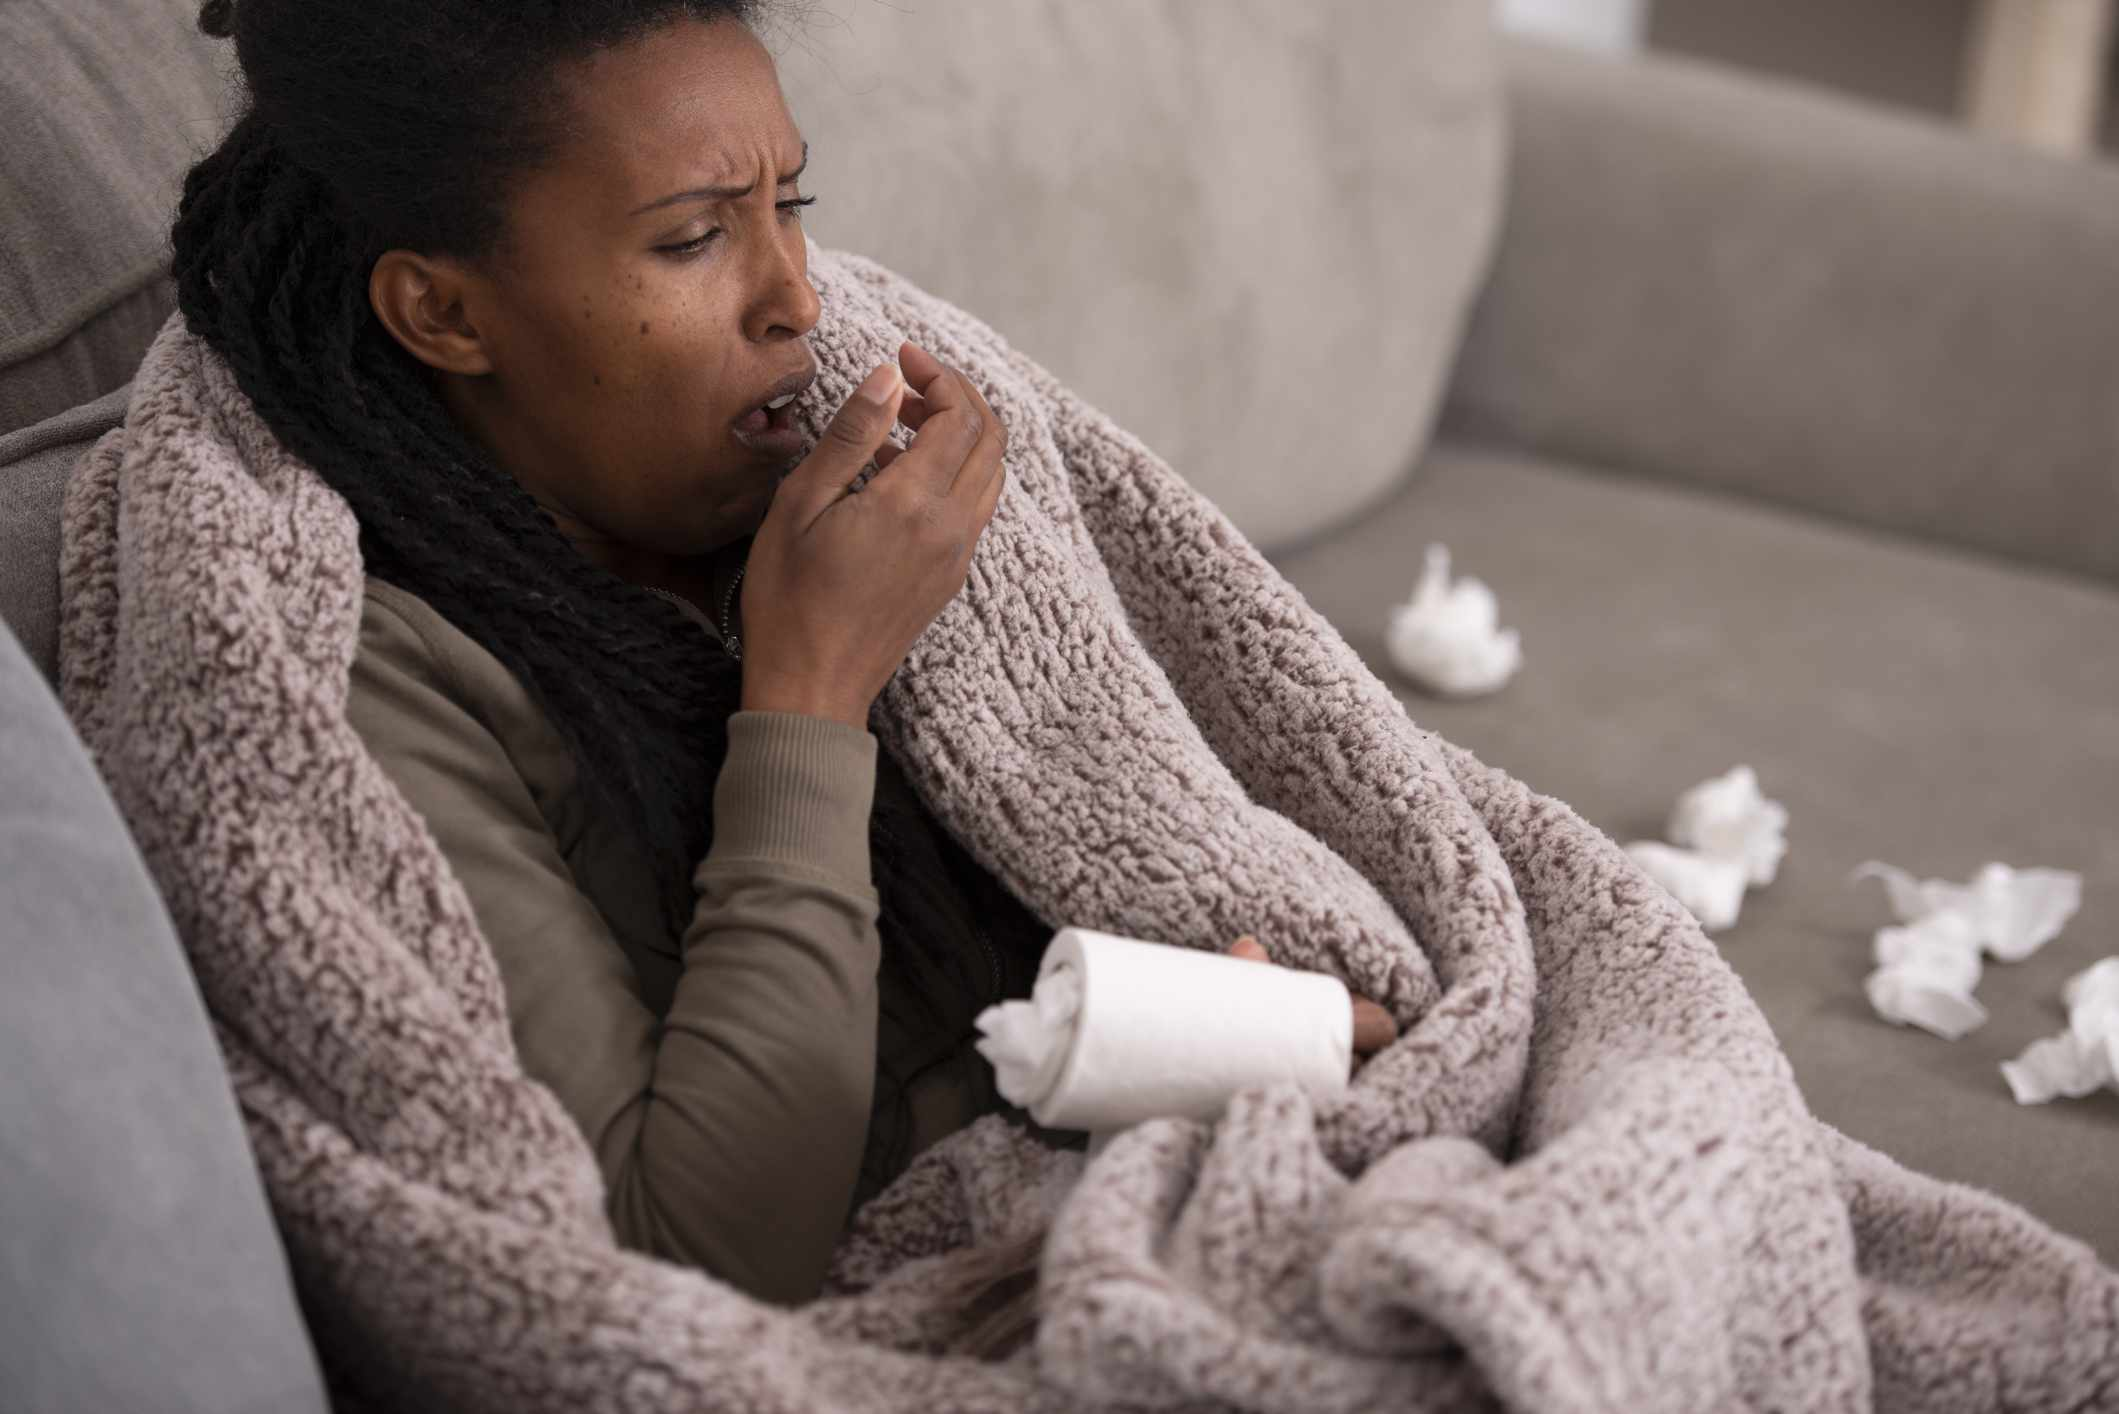 Woman sick with cough, may have pneumonia